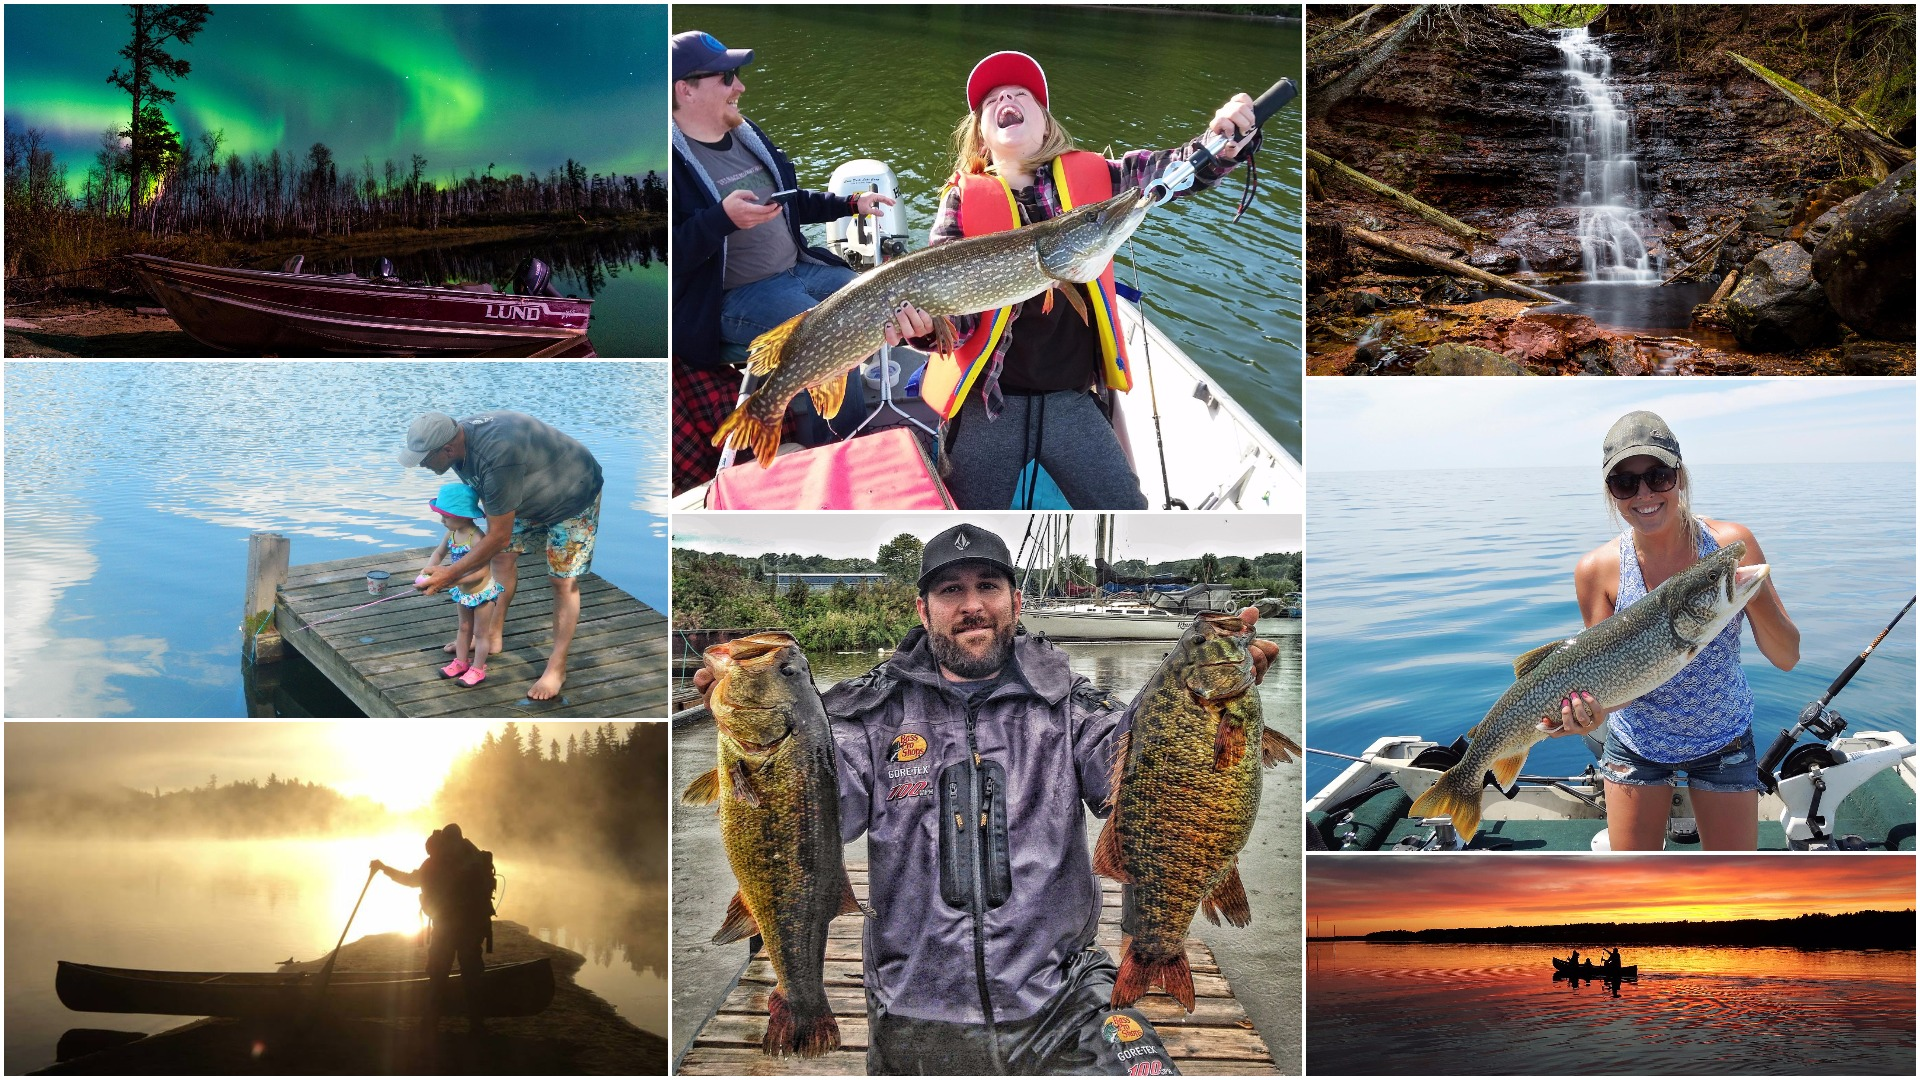 The best way to celebrate Canada Day and National Fishing Week